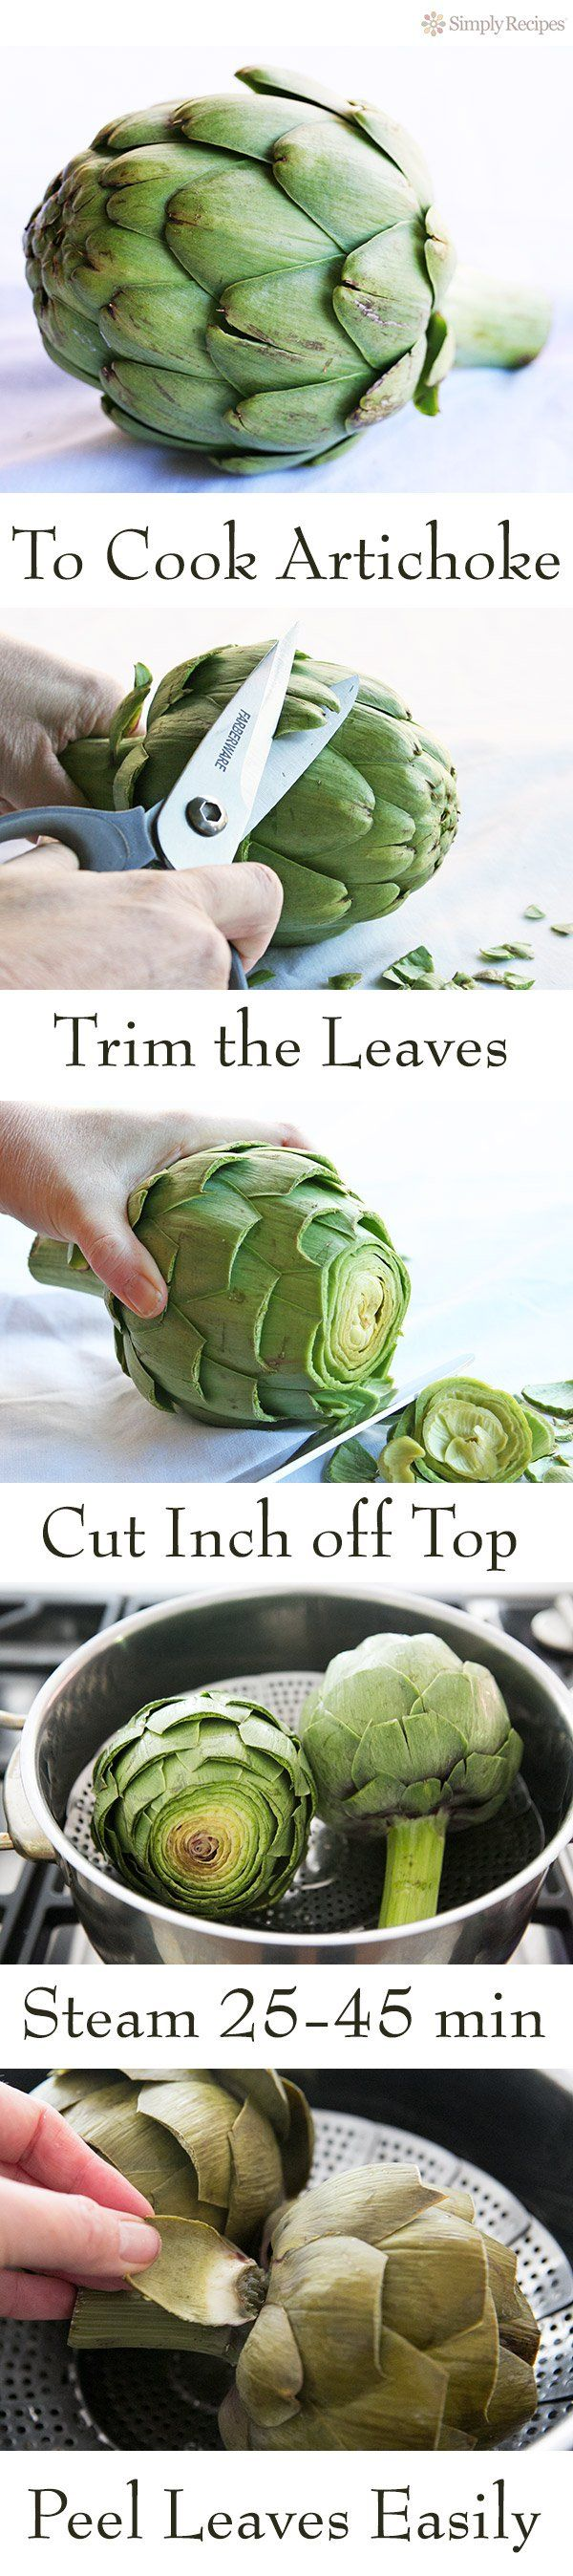 Artichokes are so good for you and so delicious! Here are detailed instructions (with photos) on how to cook them and eat them. Easy! #paleo #vegan On SimplyRecipes.com